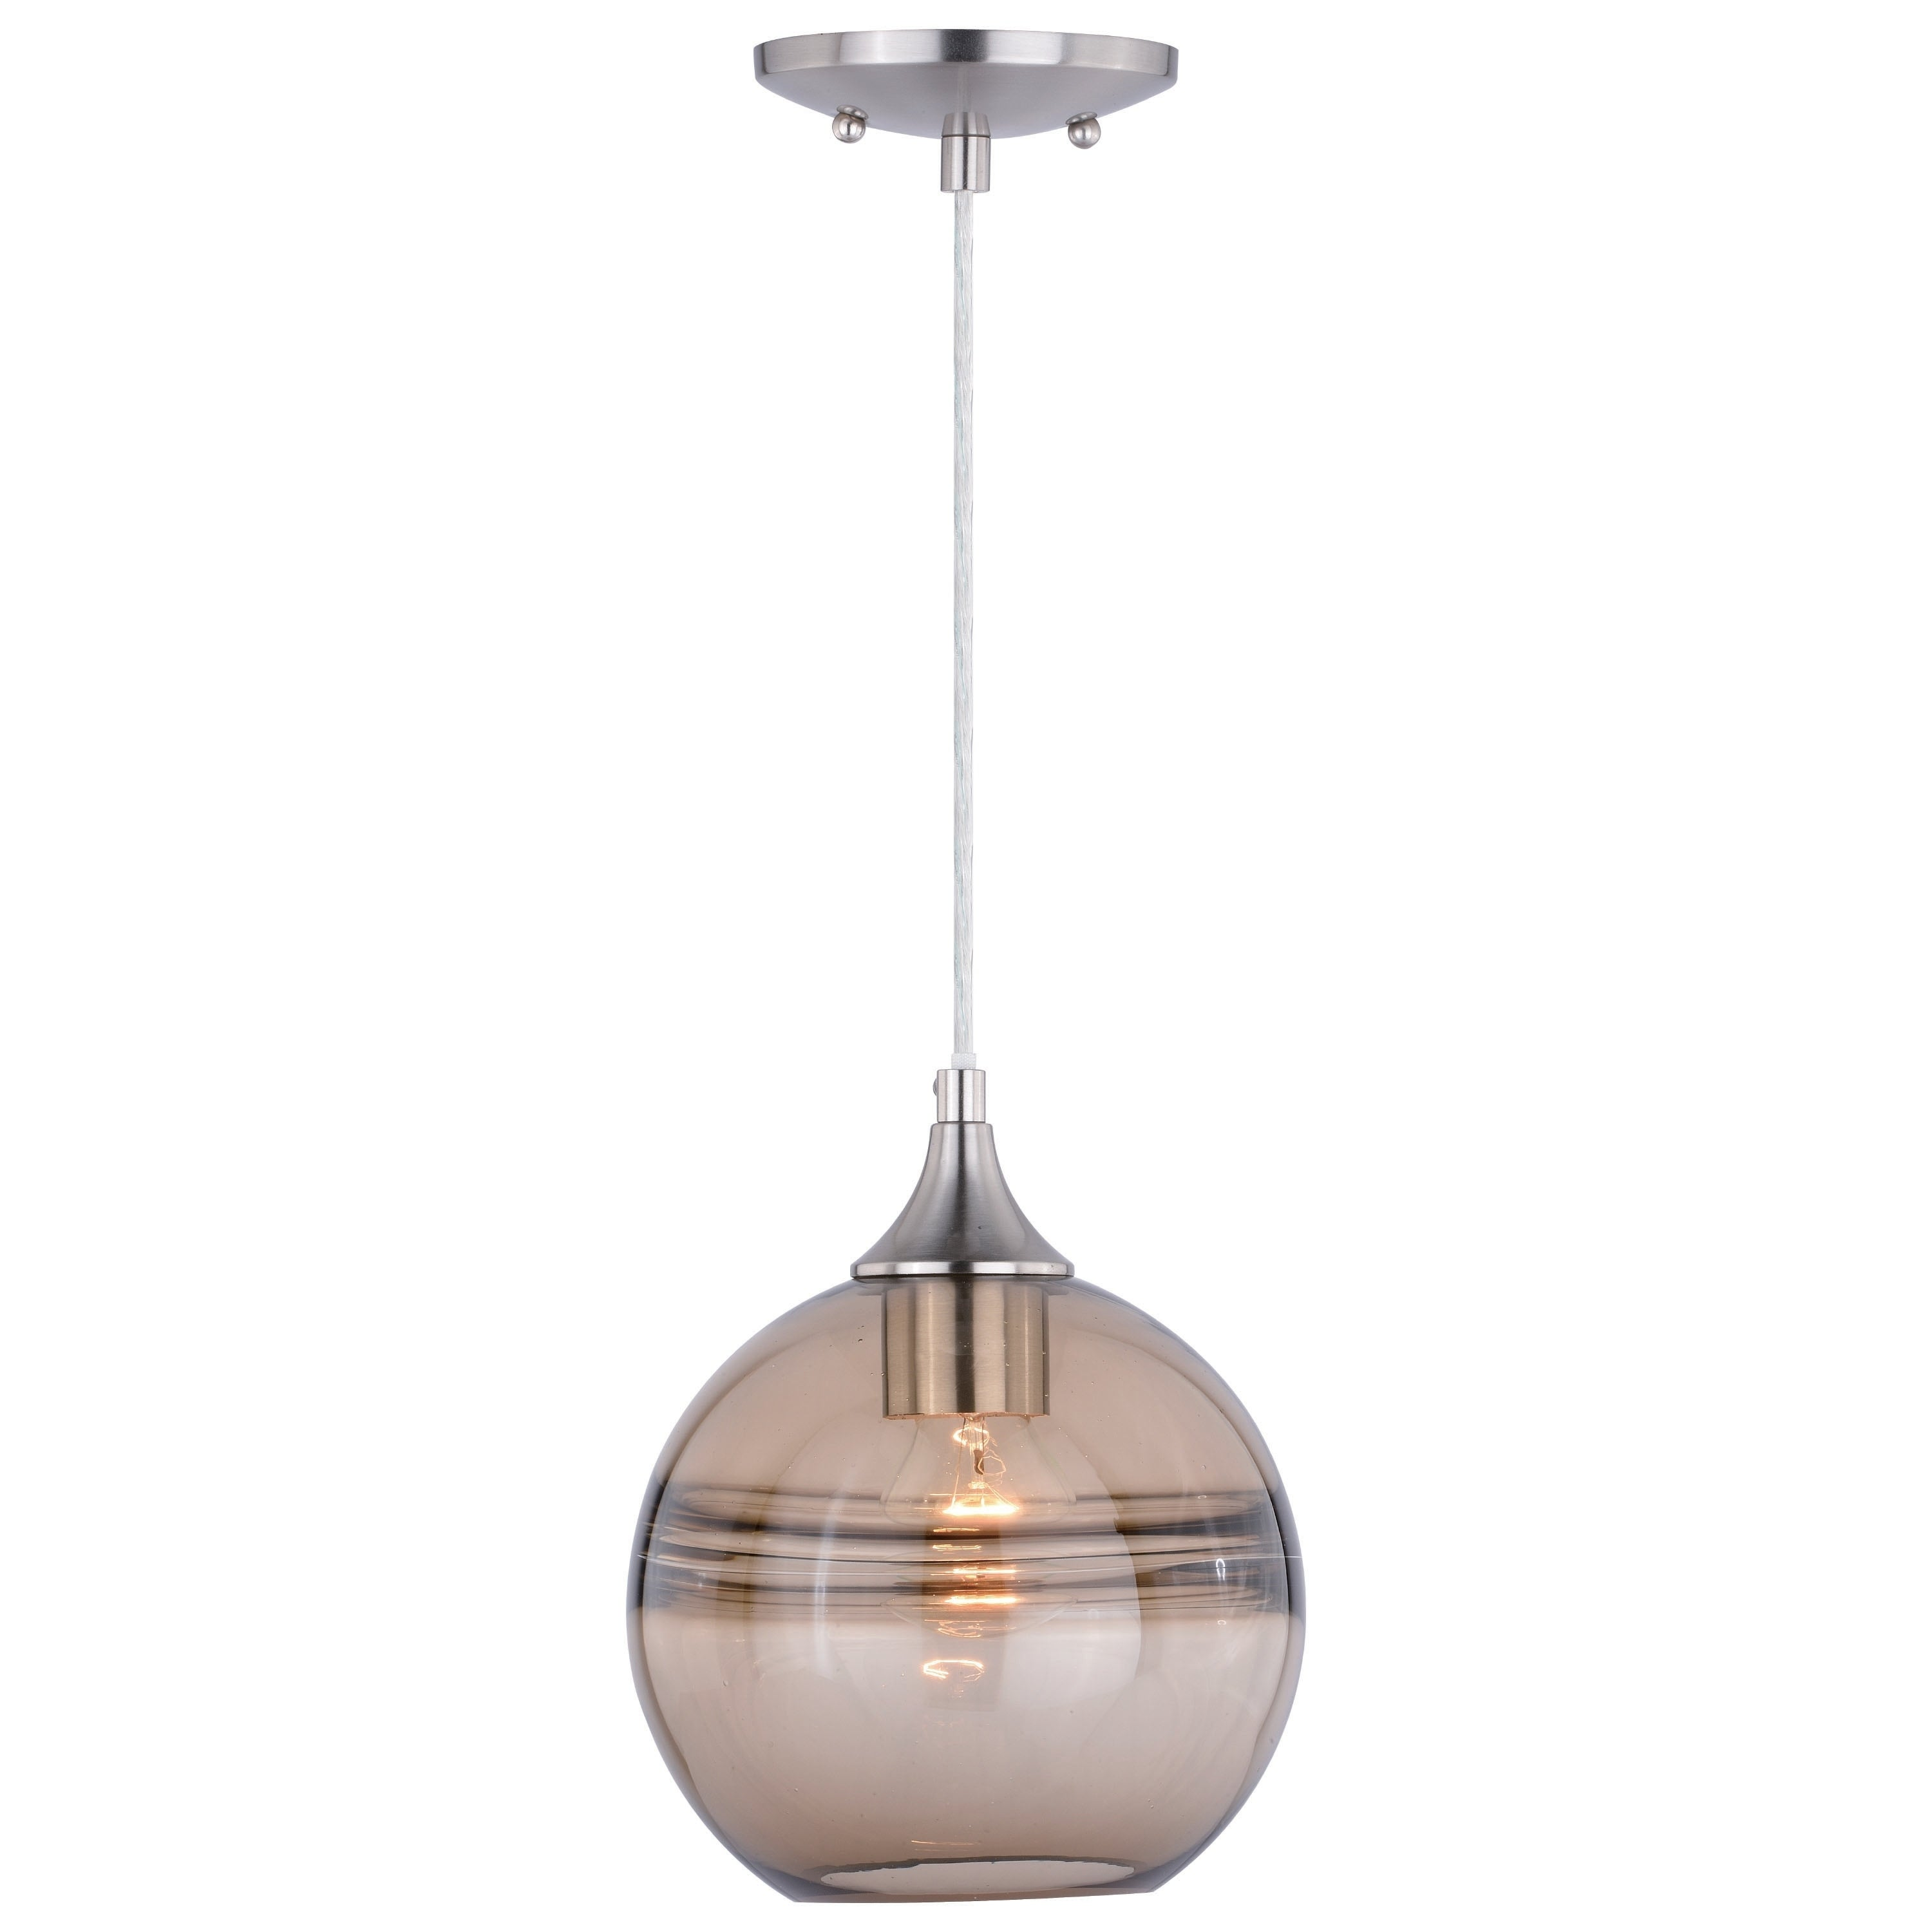 Milano Satin Nickel Globe Mini Pendant Ceiling Light Amber Fog Glass 8 In W X 9 25 In H X 8 In D Overstock 28387032